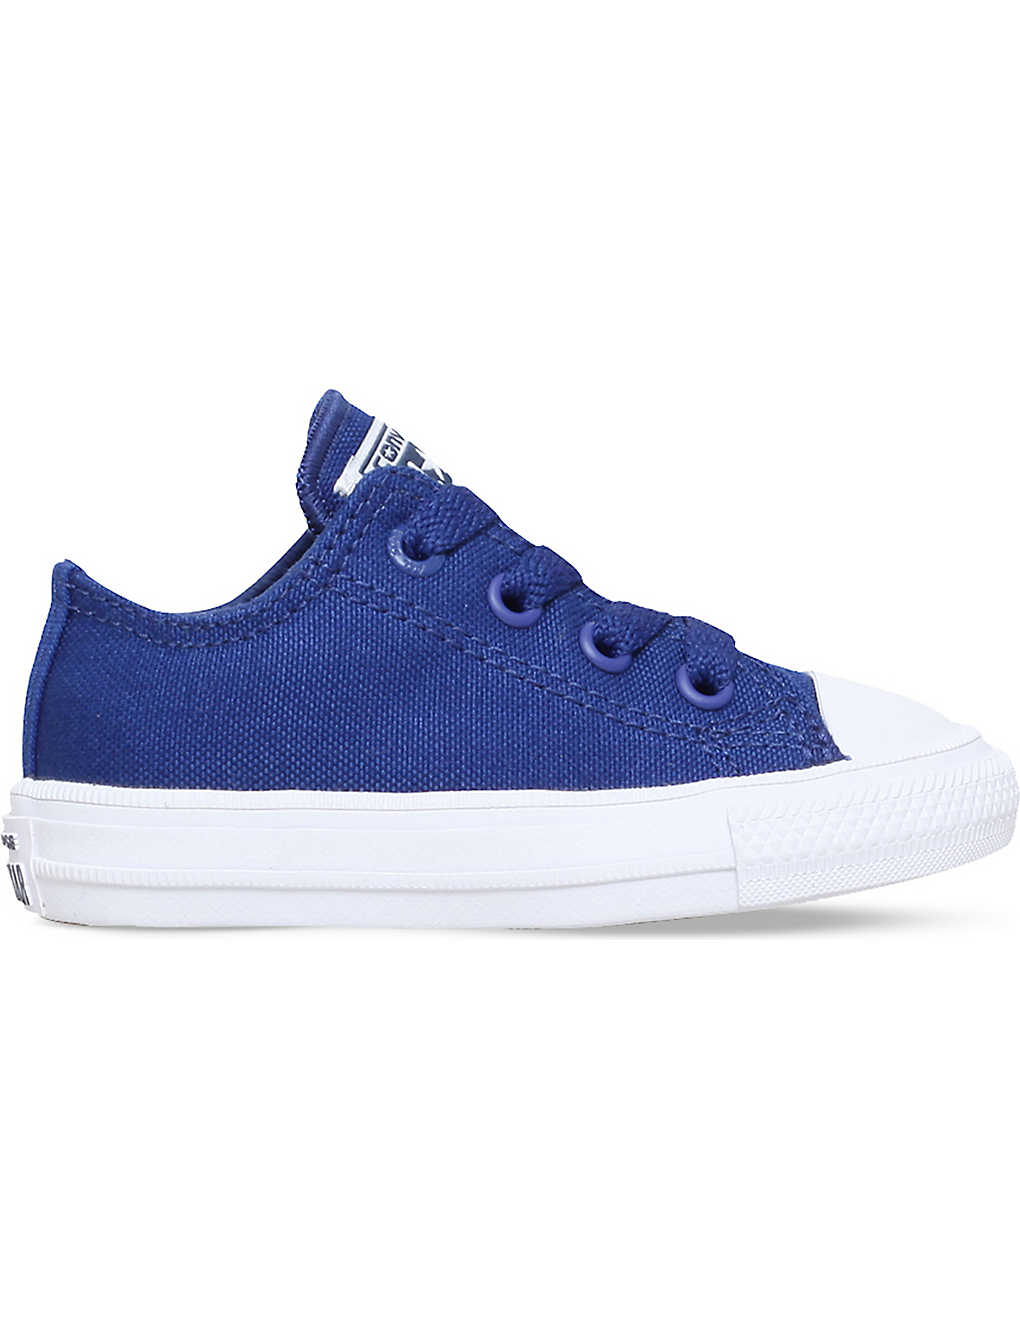 98a28702518070 CONVERSE - Chuck taylor all star ii low-top canvas trainers 2-4 ...